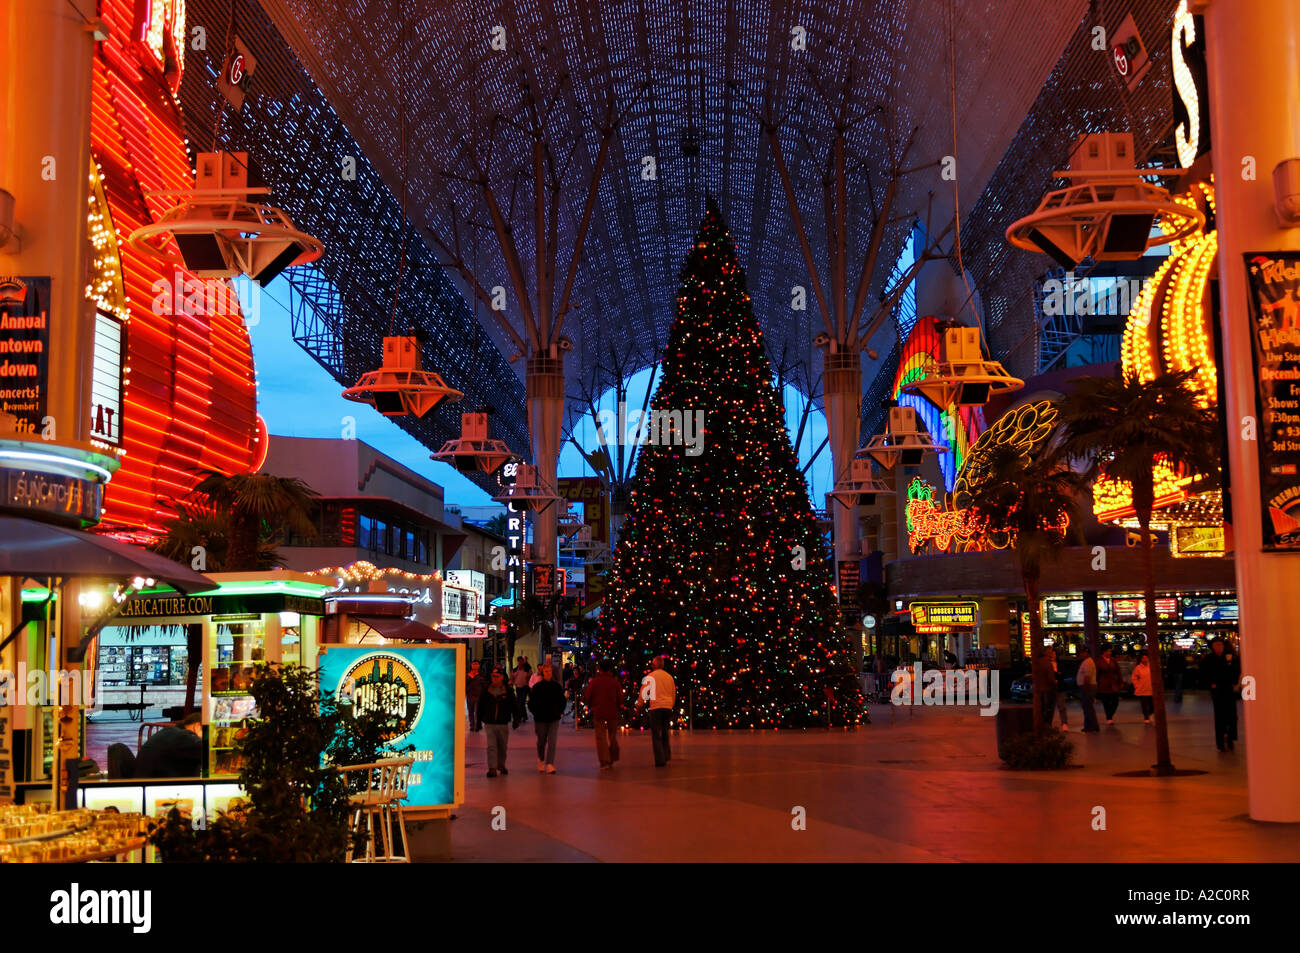 Las Vegas Christmas.The Fremont Street Experience In Downtown Las Vegas During